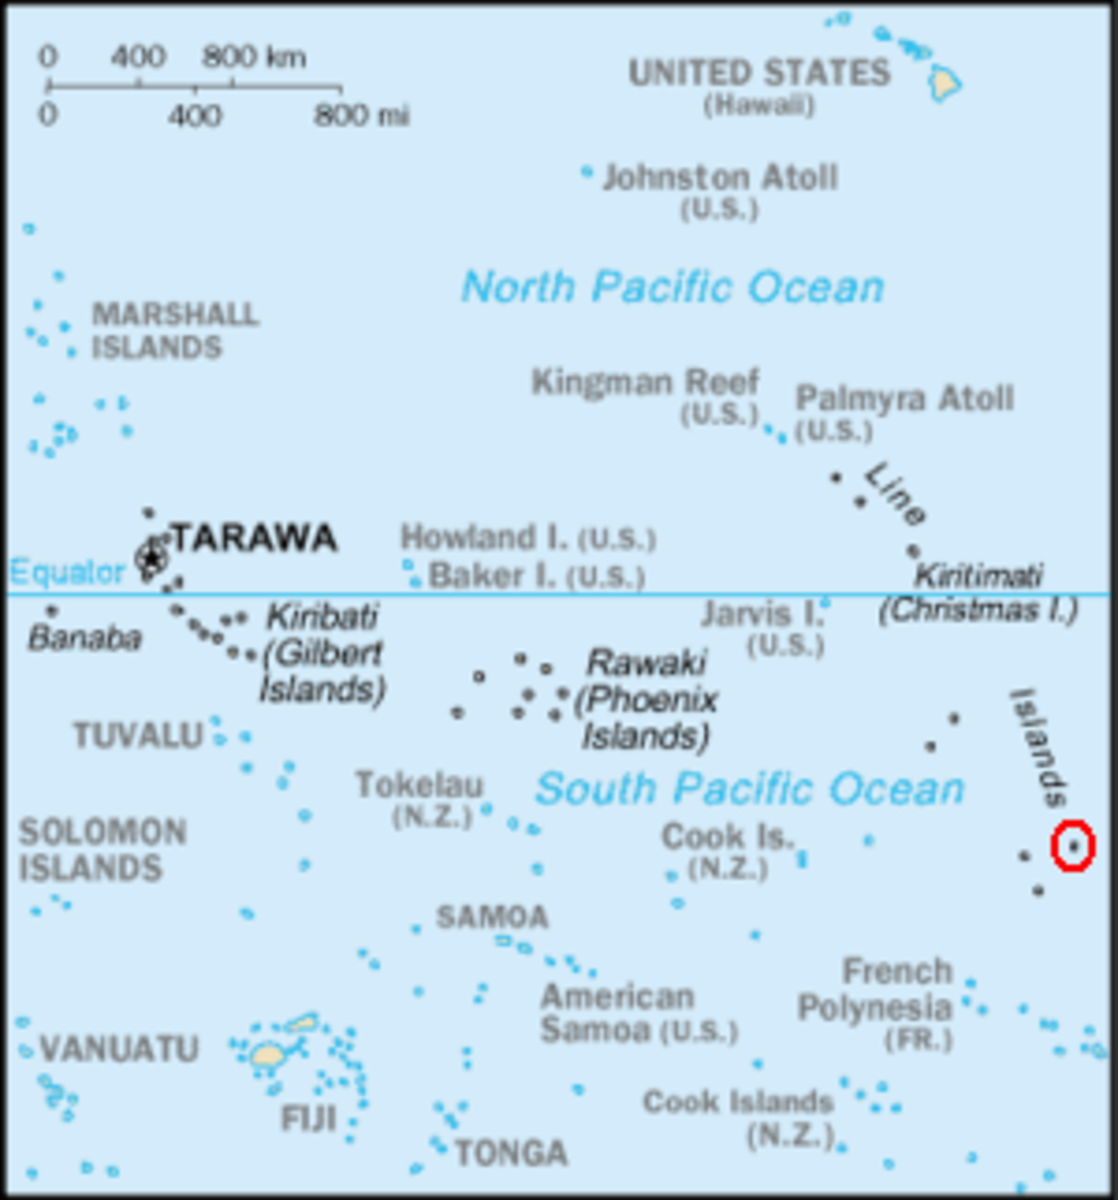 Map of the Pacific Ocean showing the location of Kiribati's Islands, its capital, Tarawa and the archipelago's easternmost point, Caroline Atoll (shaded by a red circle) which is the first place on Earth to see a new calender day